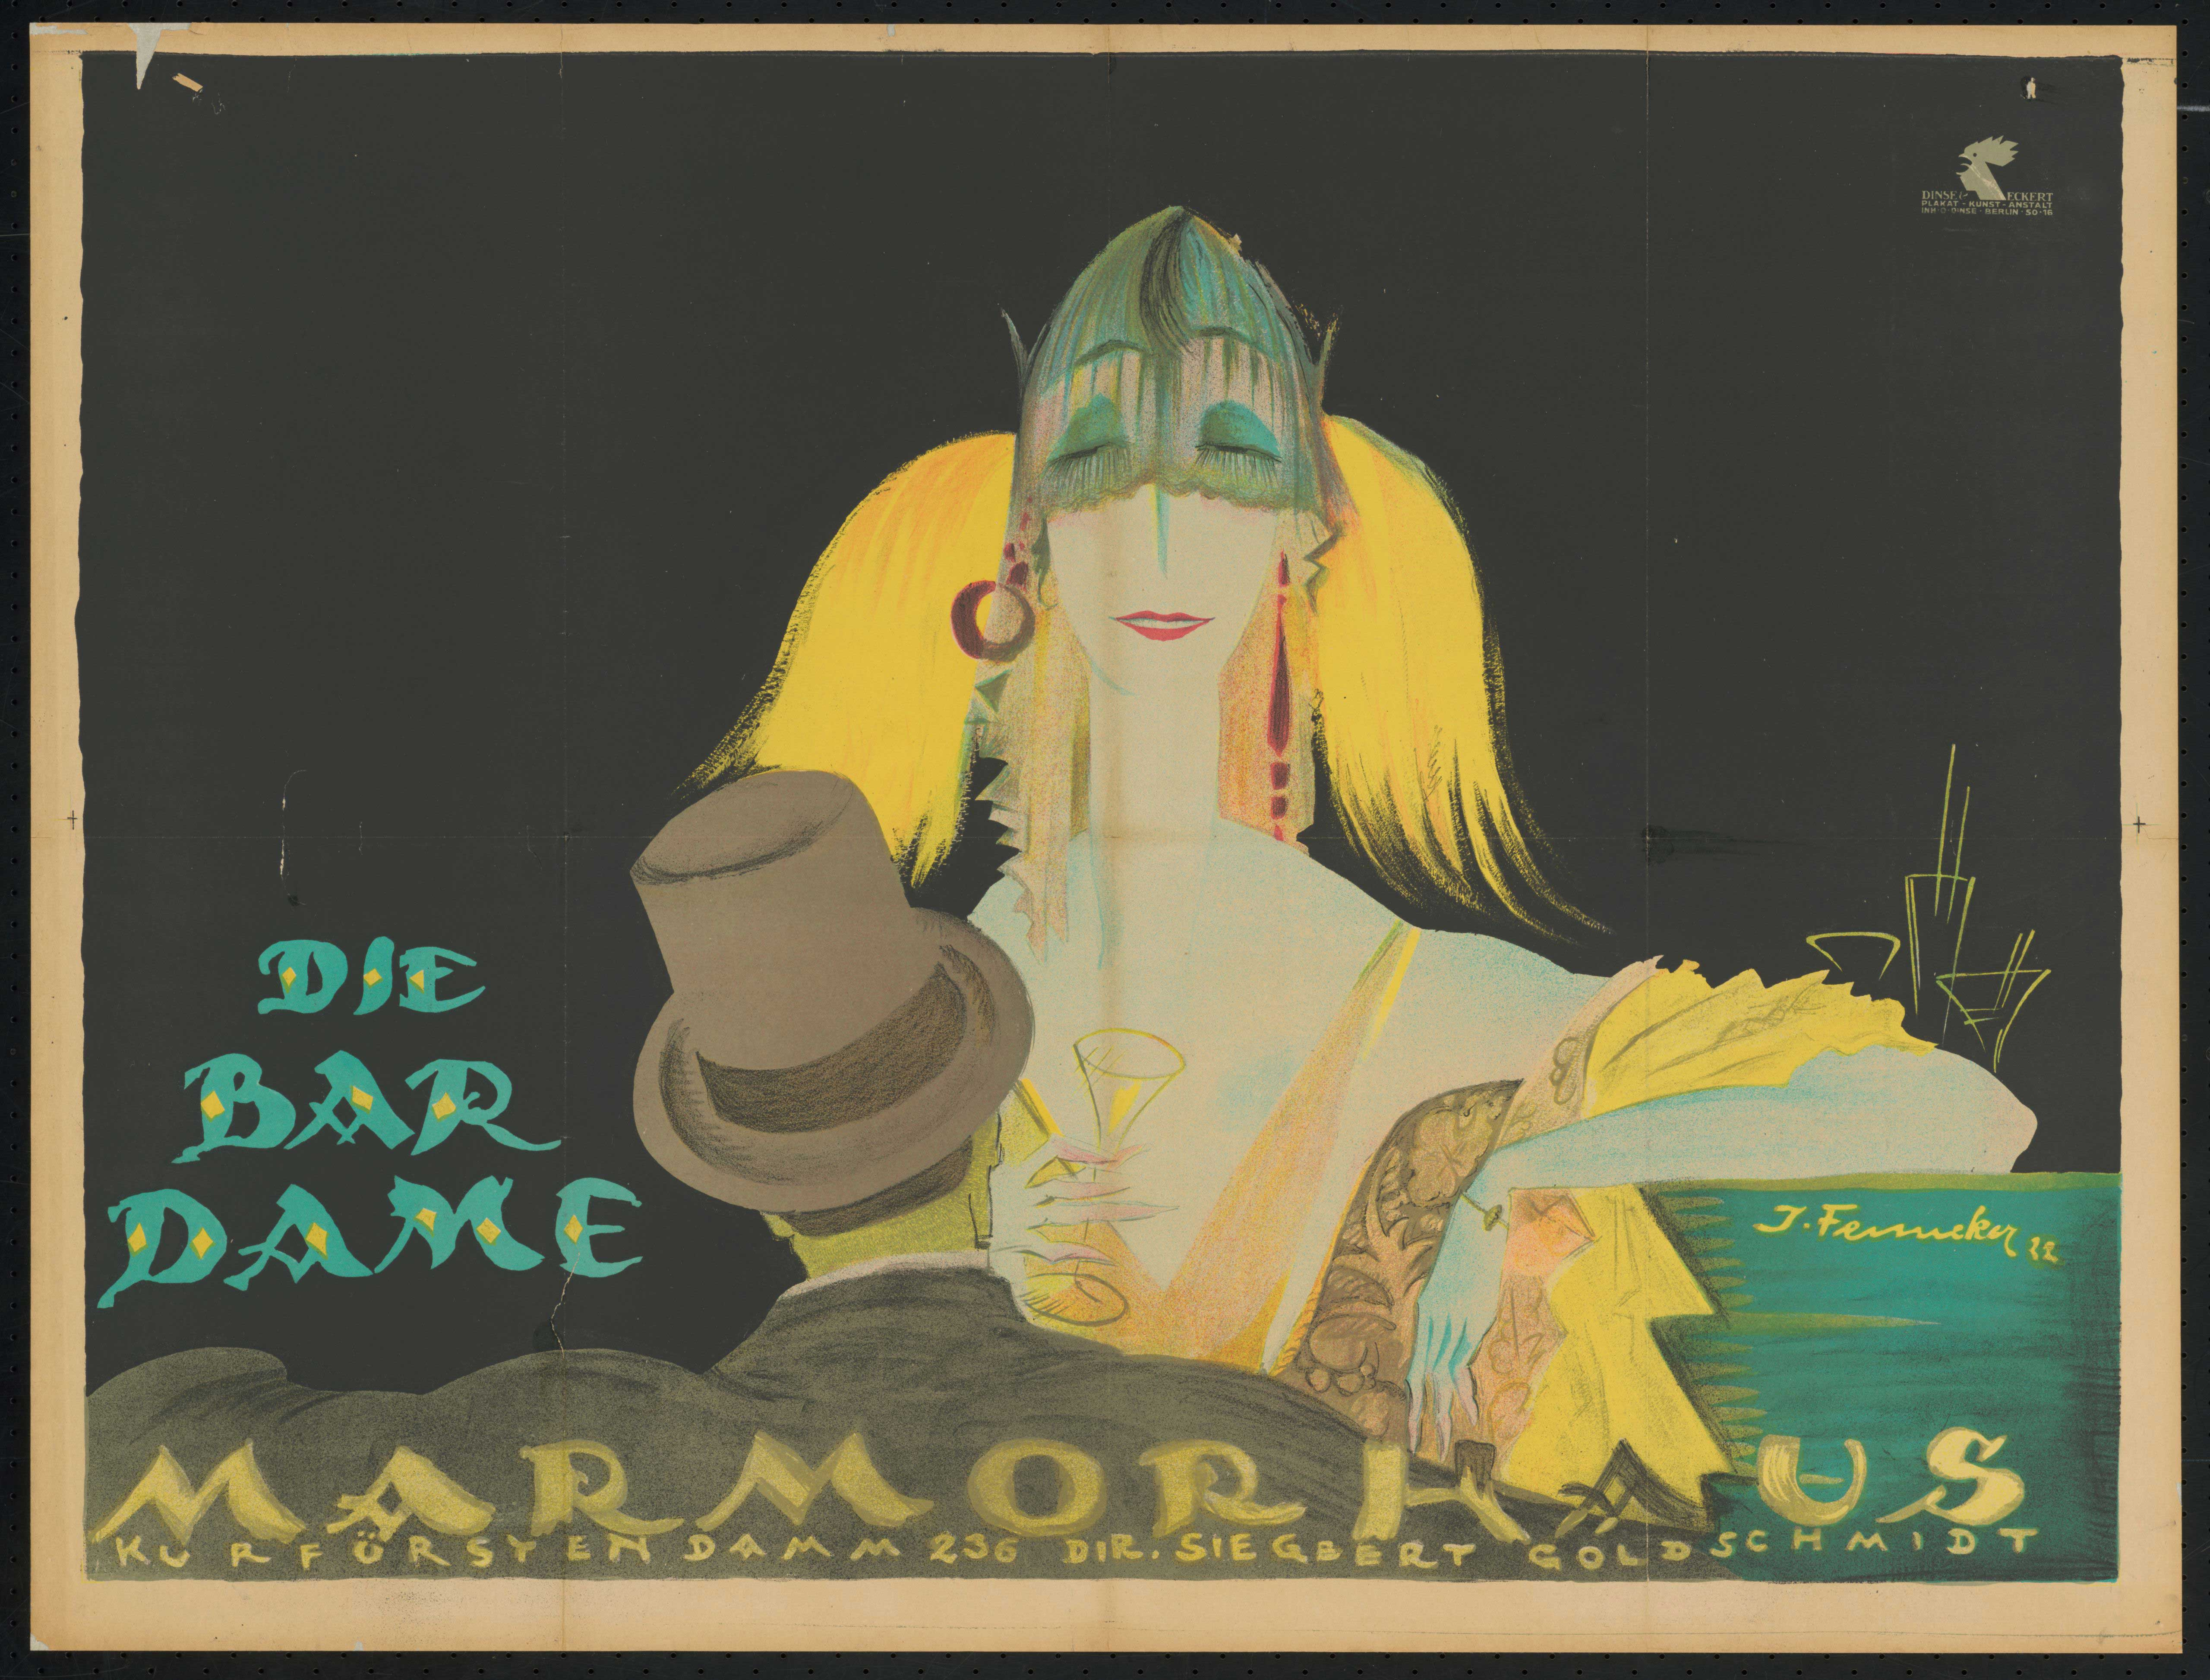 Film poster by Josef Fenneker: Die Bardame, Germany 1921, directed by Johannes Guter